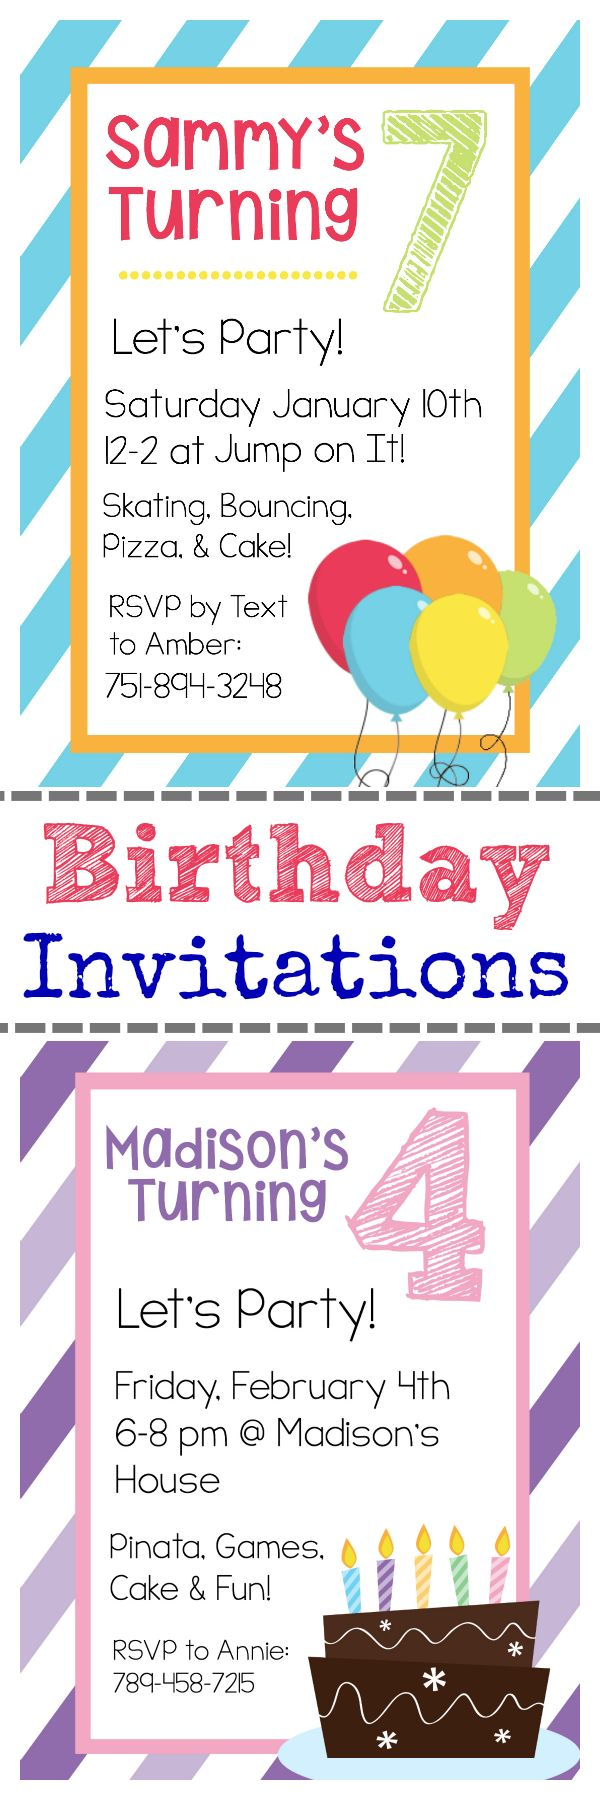 free printable birthday invitation cards for kids ; 4a2bfd639c5df72614695db72b87d80f--free-printable-birthday-invitations-party-printables